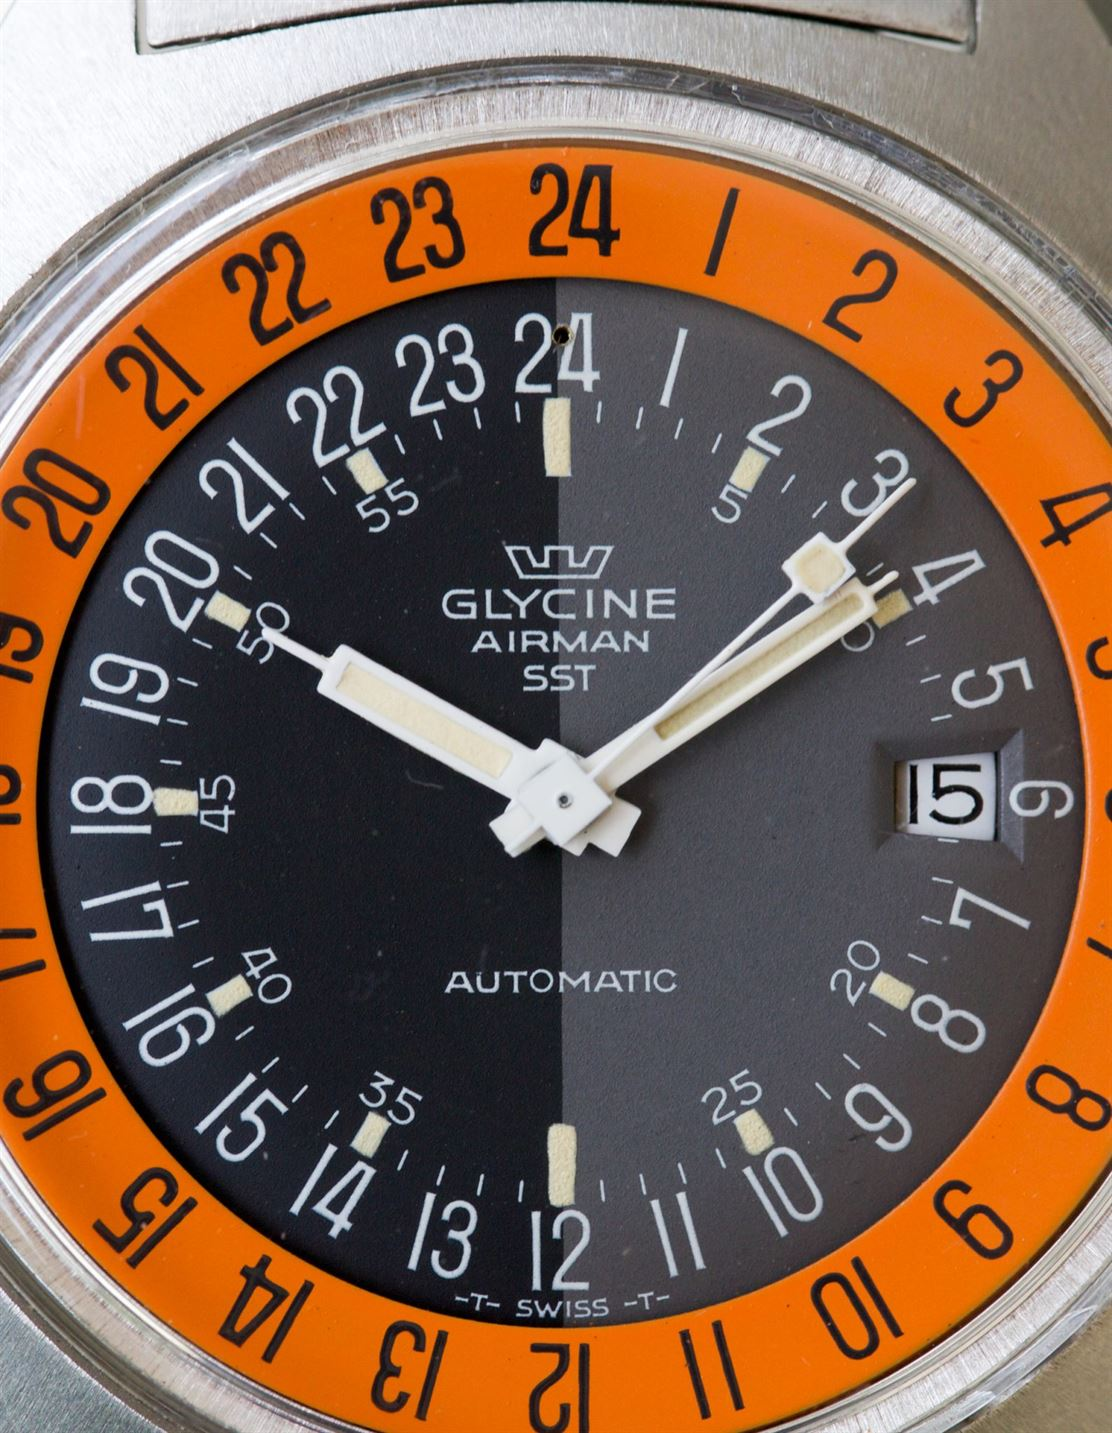 Glysine Airman on angle in The Colourful World of Vintage Watches for A Collected Man London